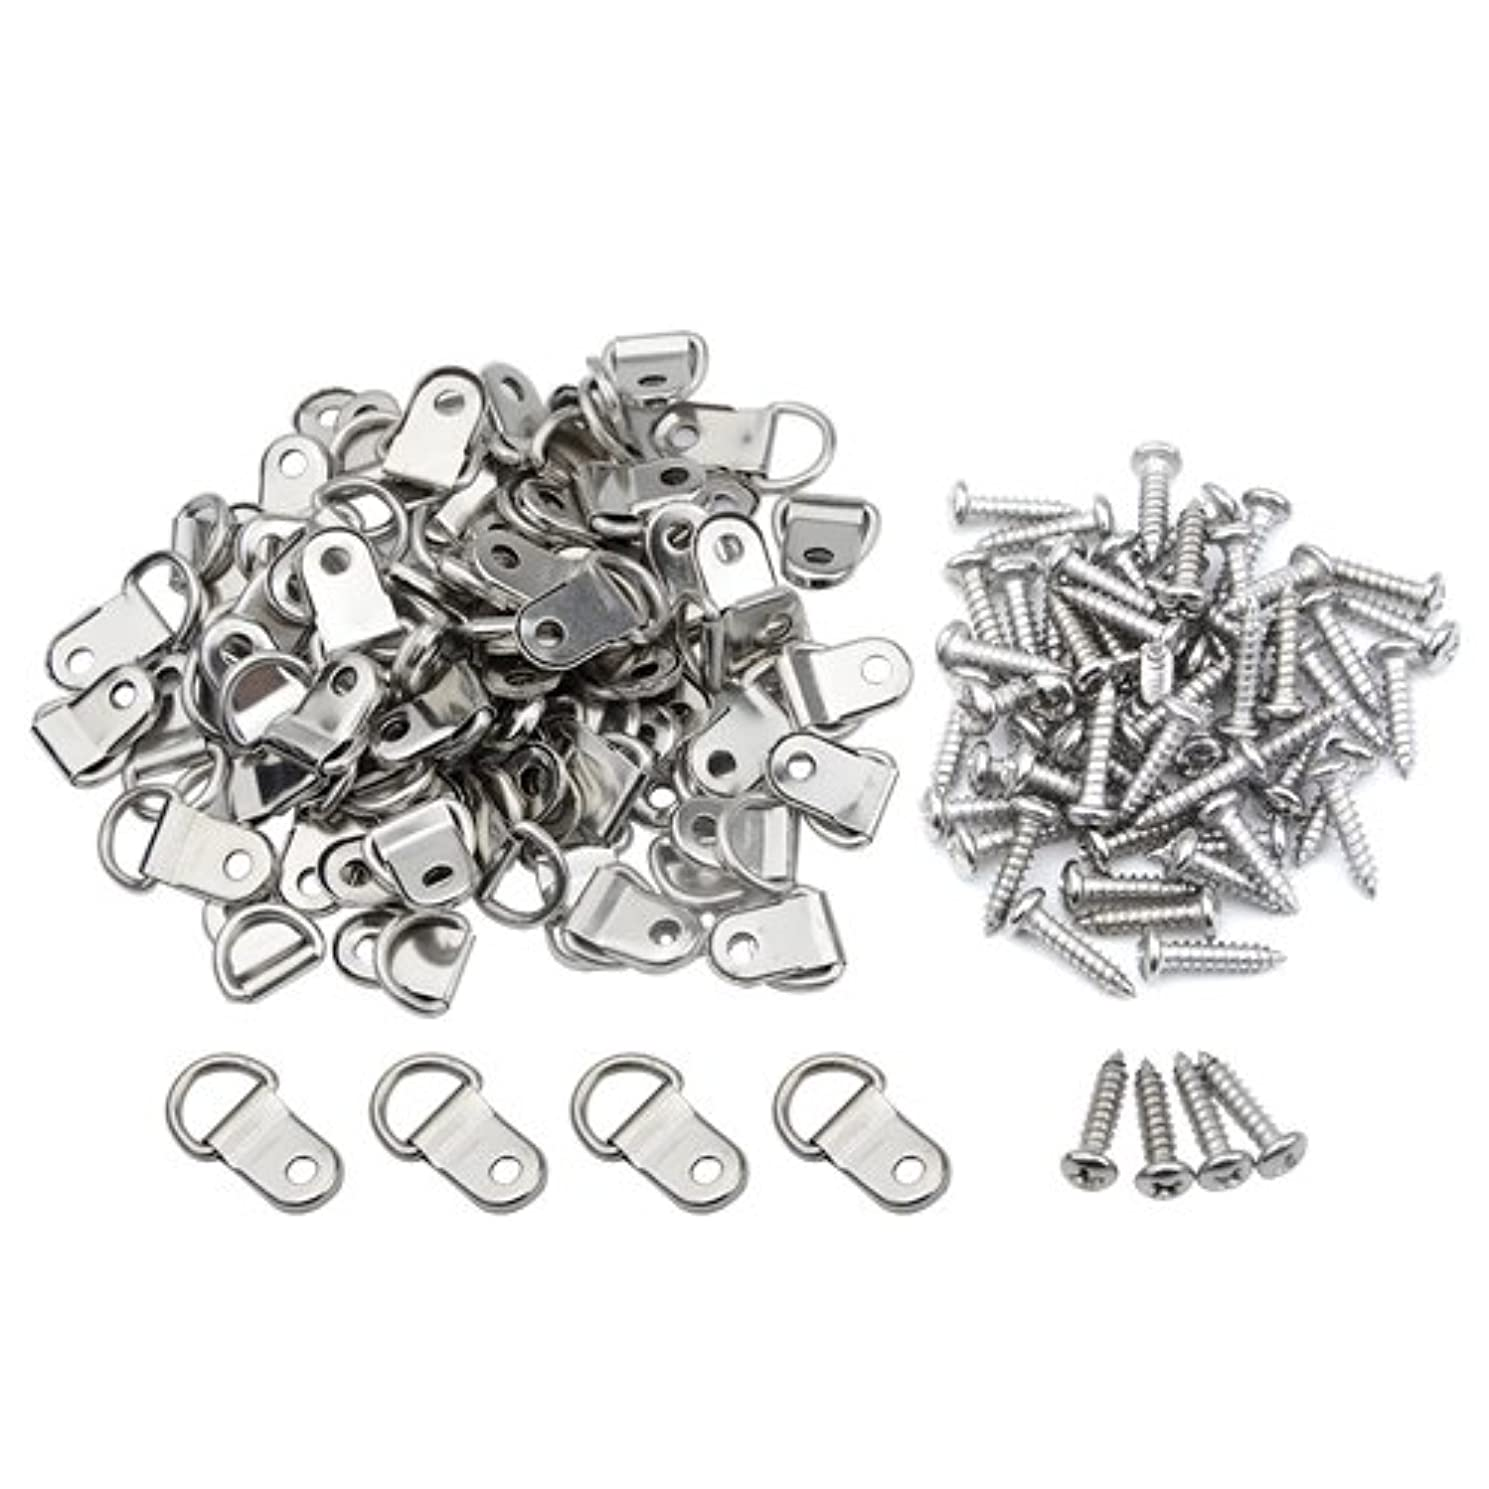 TOVOT 100 PCS D Ring Picture Hangers Double Hole with 304 Stainless Steel Phillips Screw